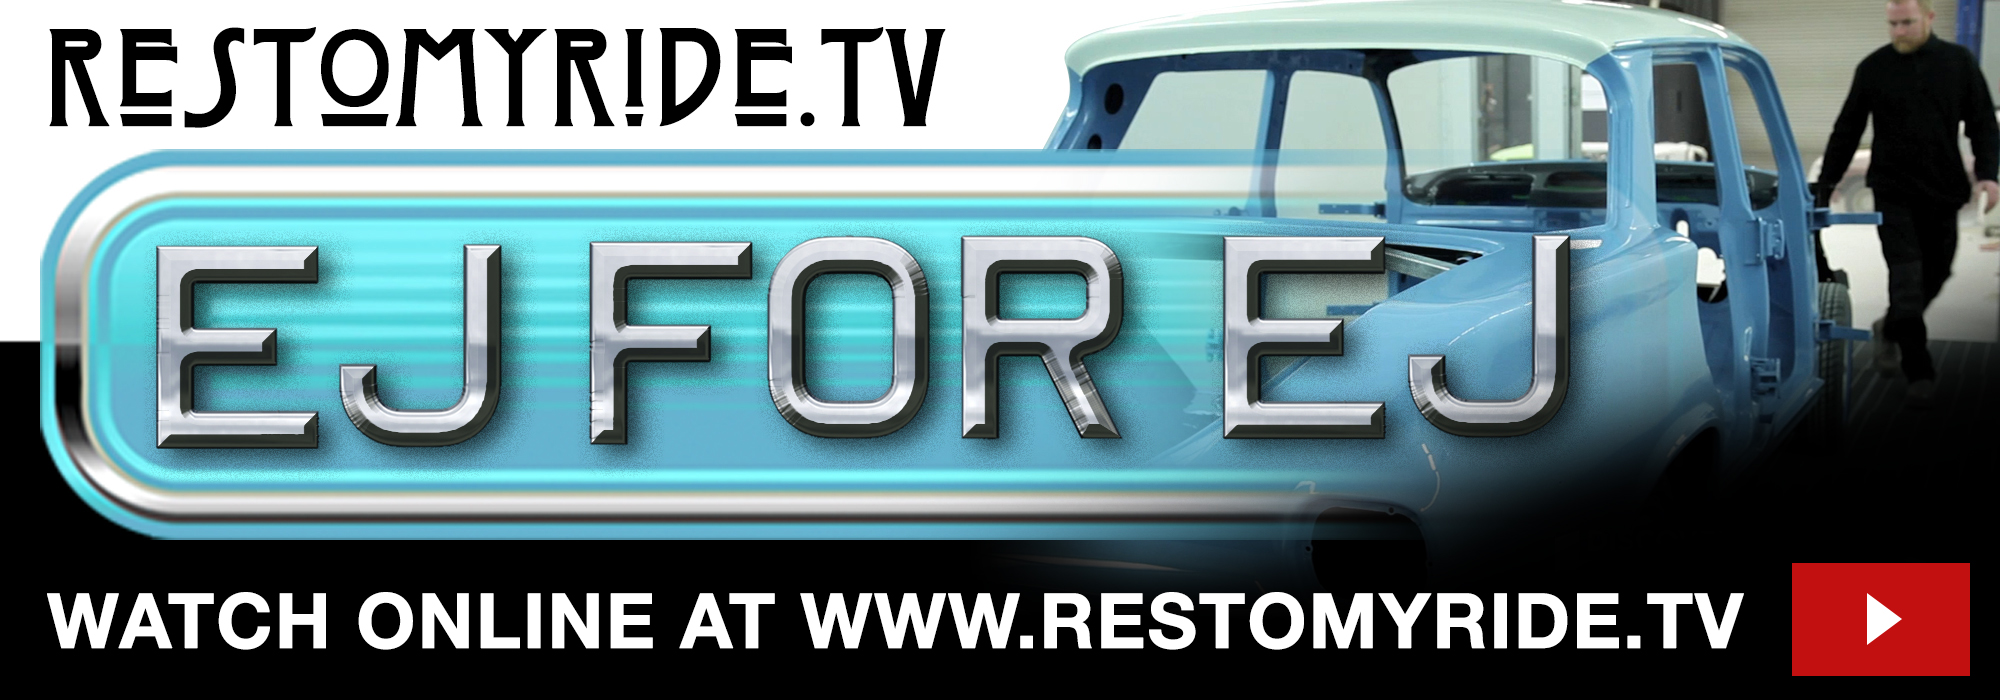 RESTOMYRIDE.TV